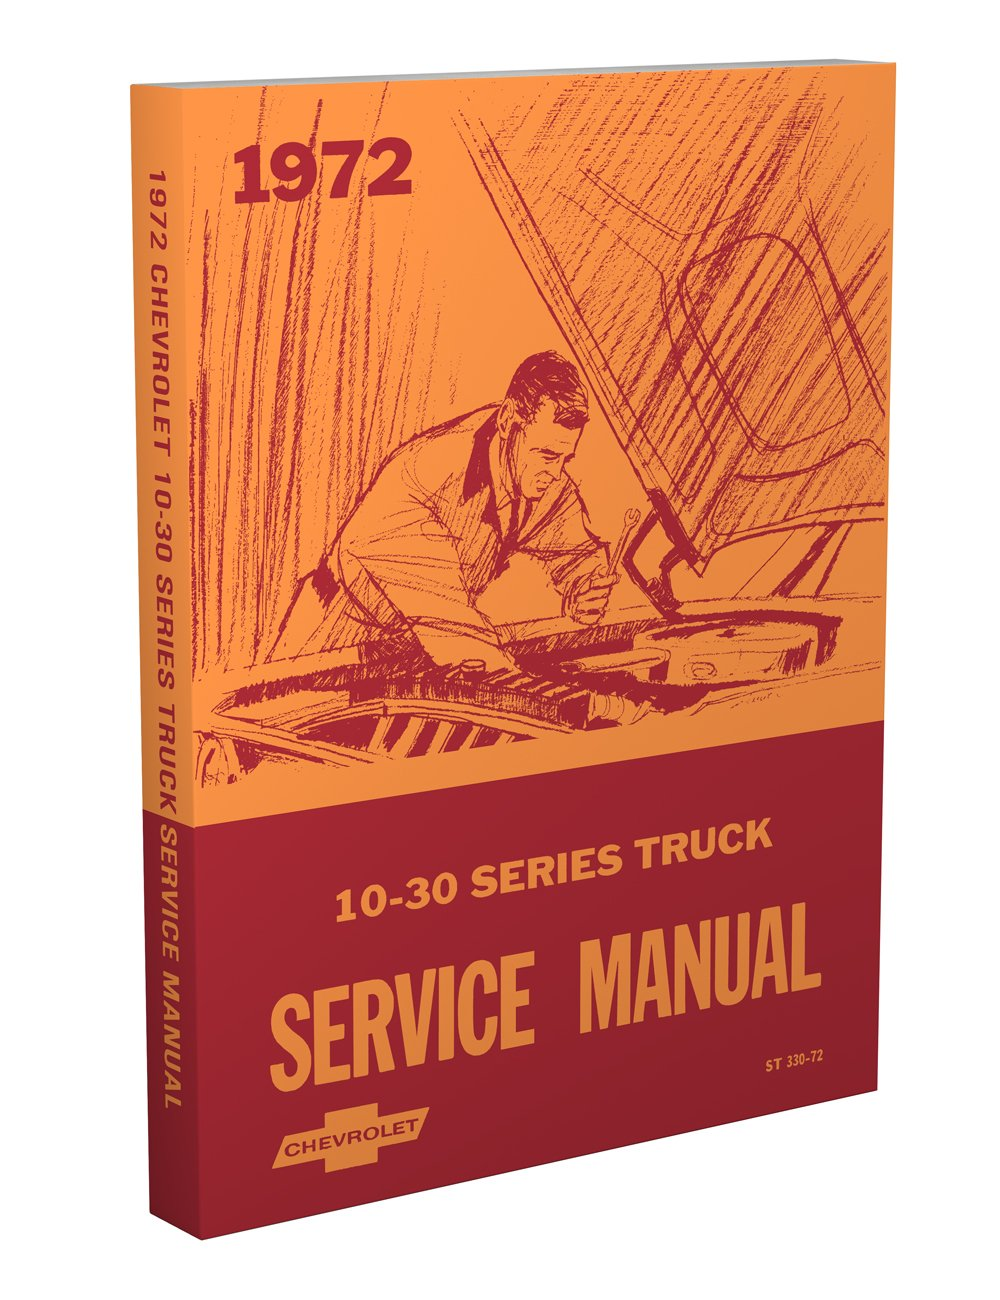 1972 Chevrolet Truck Repair Shop Manual Reprint Chevy Pickup Scout 2 Wiring Diagrams Suburban Blazer Faxon Auto Literature Books